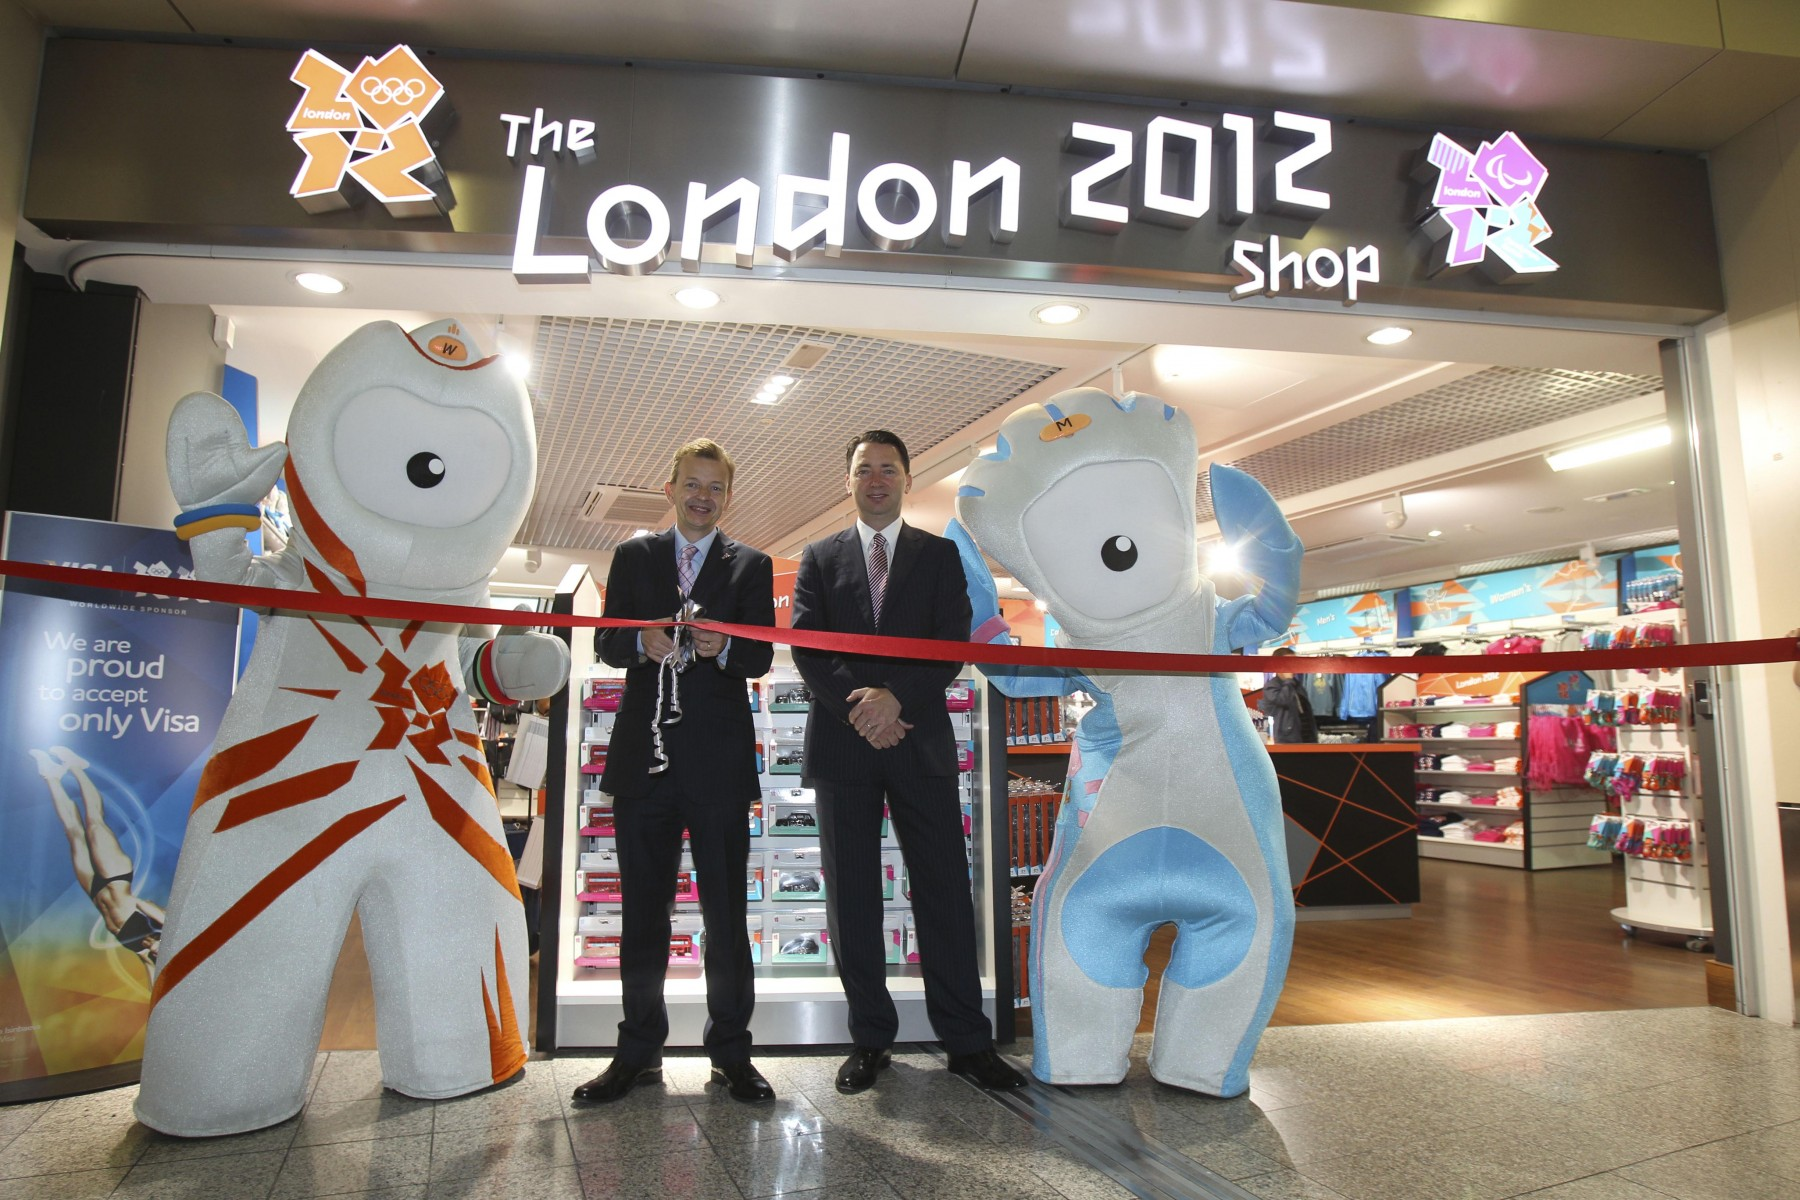 In 2012, Olympic fever hit when a London 2012 shop in the terminal. Many athletes and fans used the airport to get to the games.